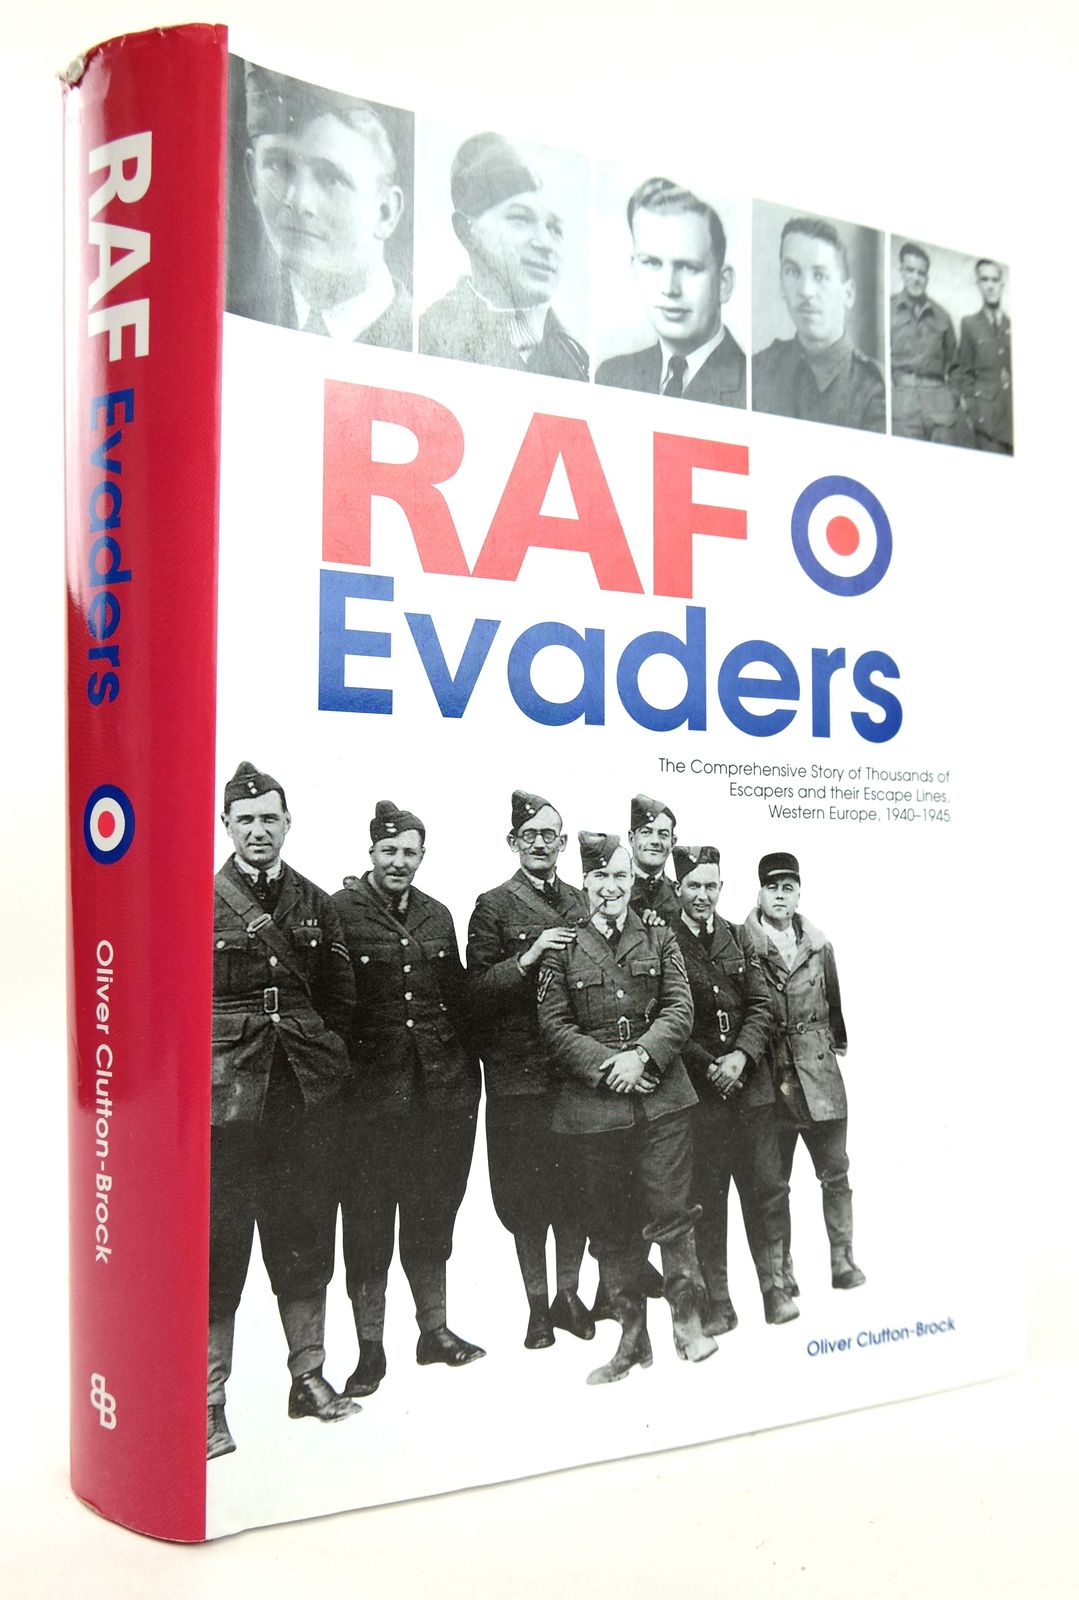 Photo of RAF EVADERS written by Clutton-Brock, Oliver published by Bounty Books (STOCK CODE: 1819004)  for sale by Stella & Rose's Books